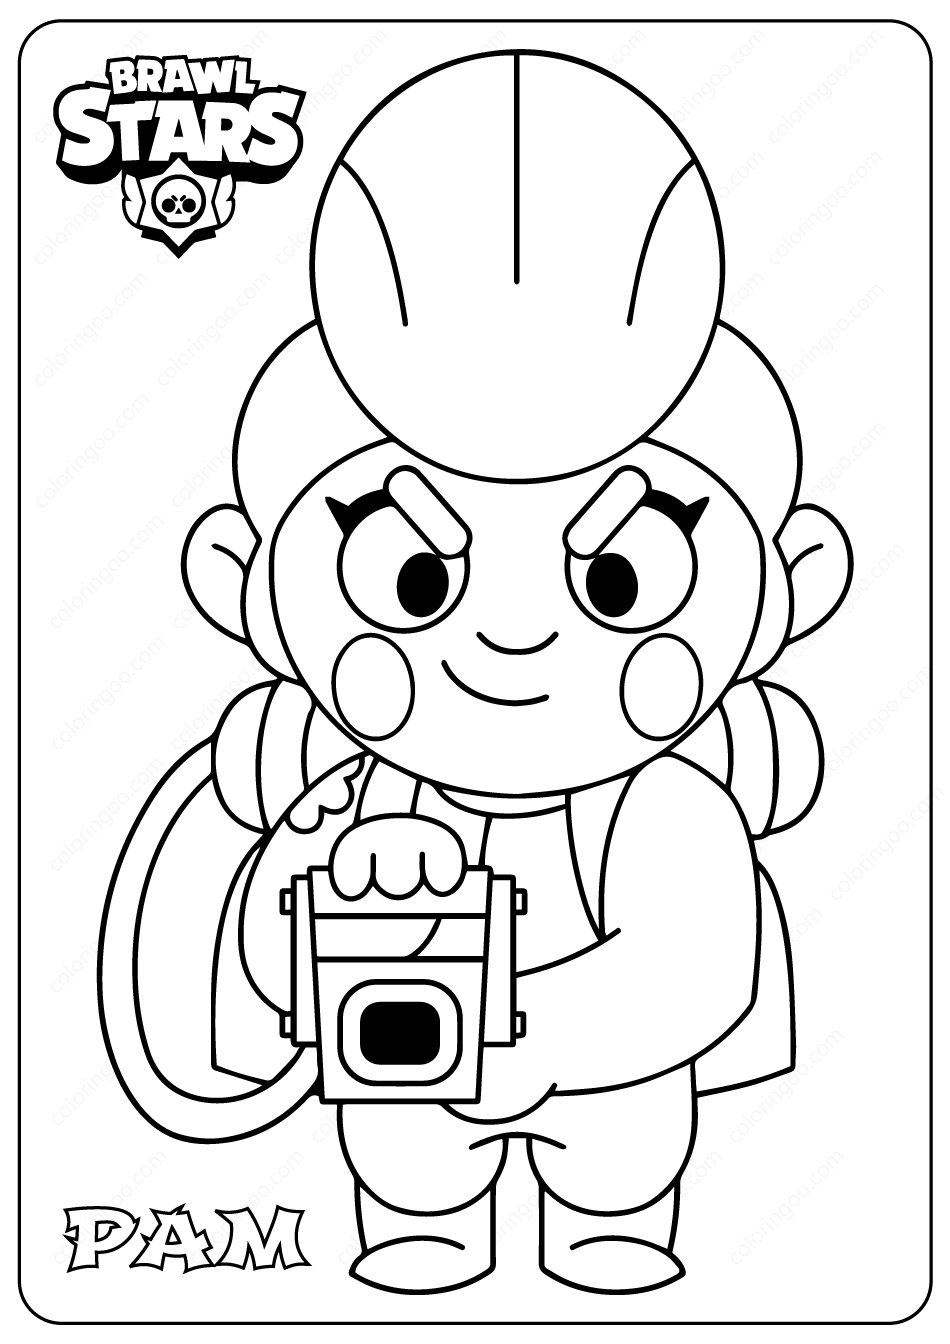 Printable Brawl Stars (Pam) PDF Coloring Pages